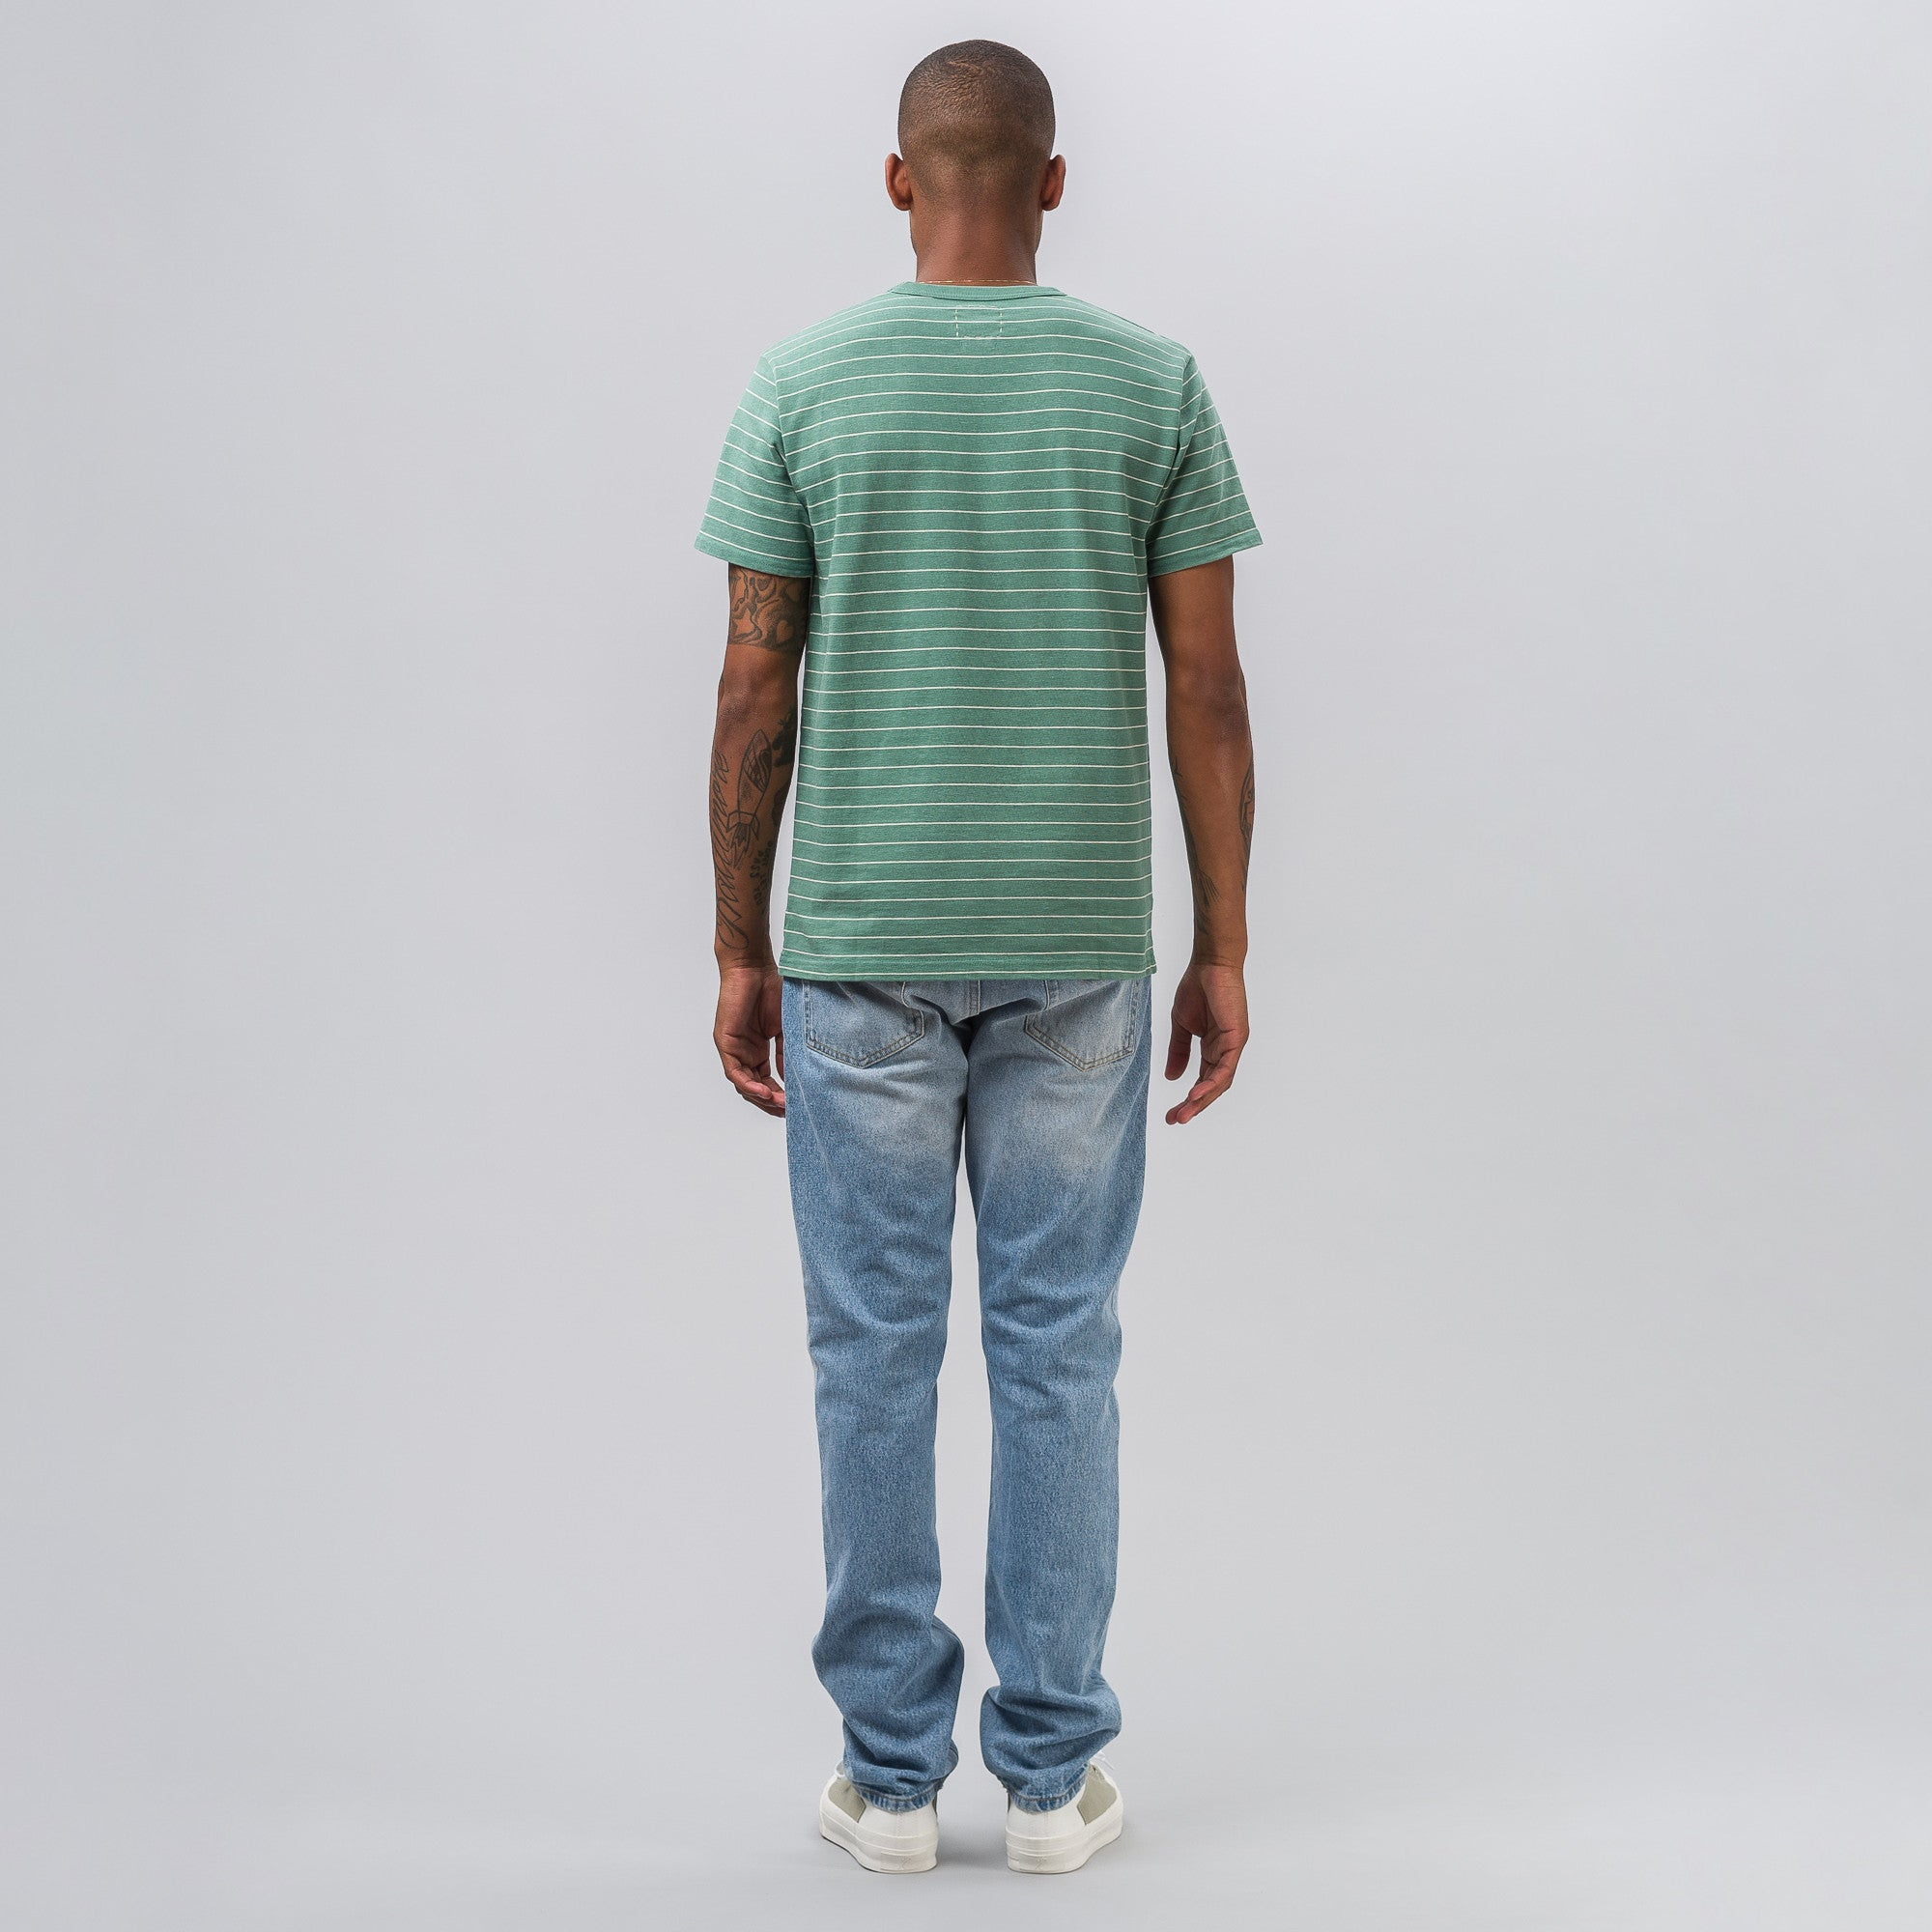 Mid Border Tee S/S in Green